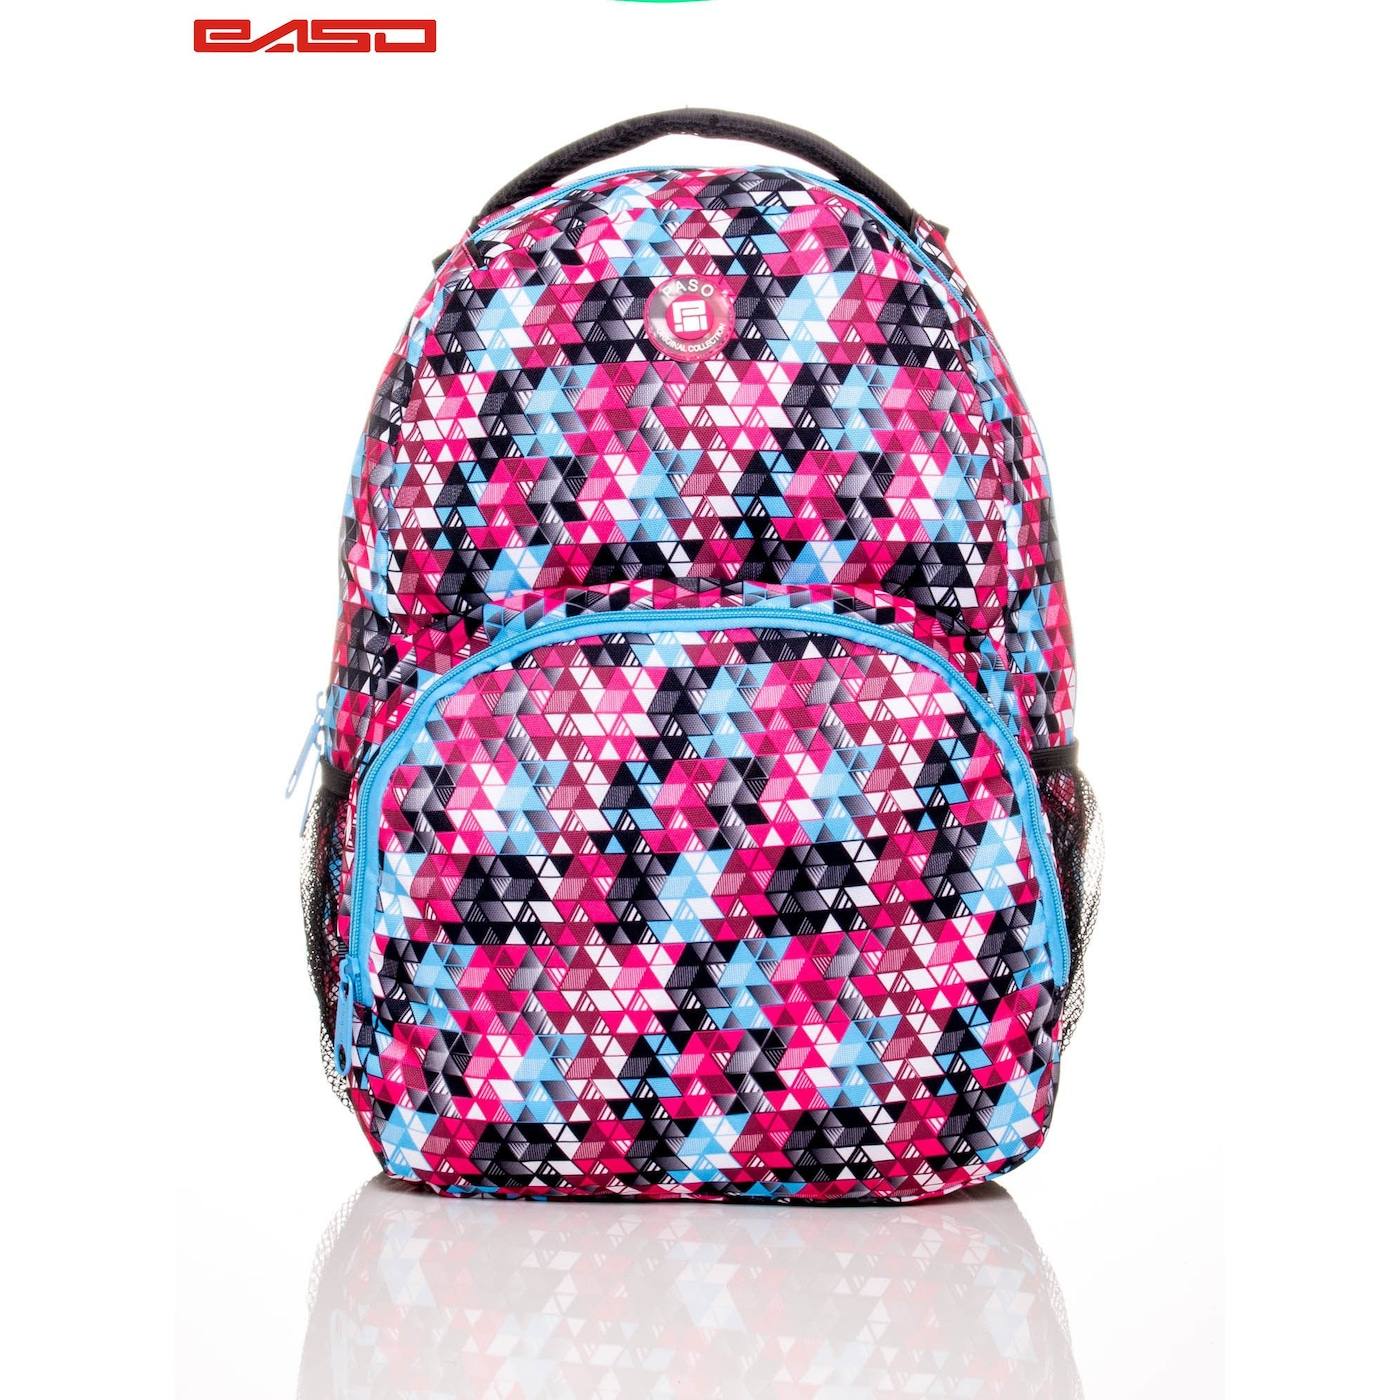 School backpack with colorful triangles